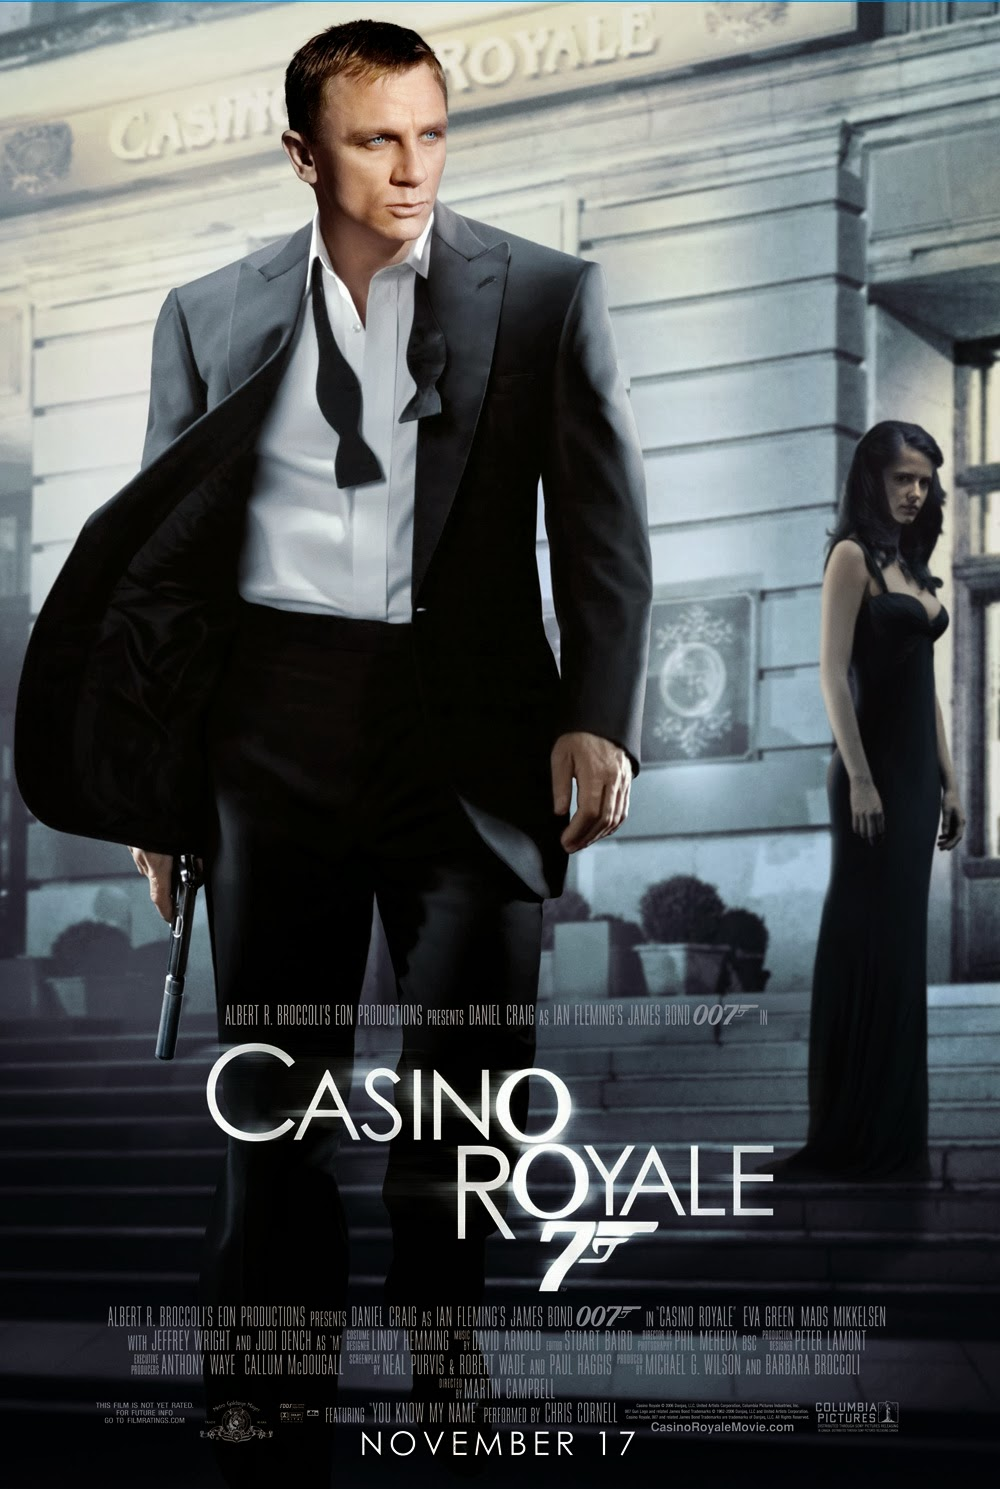 casino royale movie online free starbrust